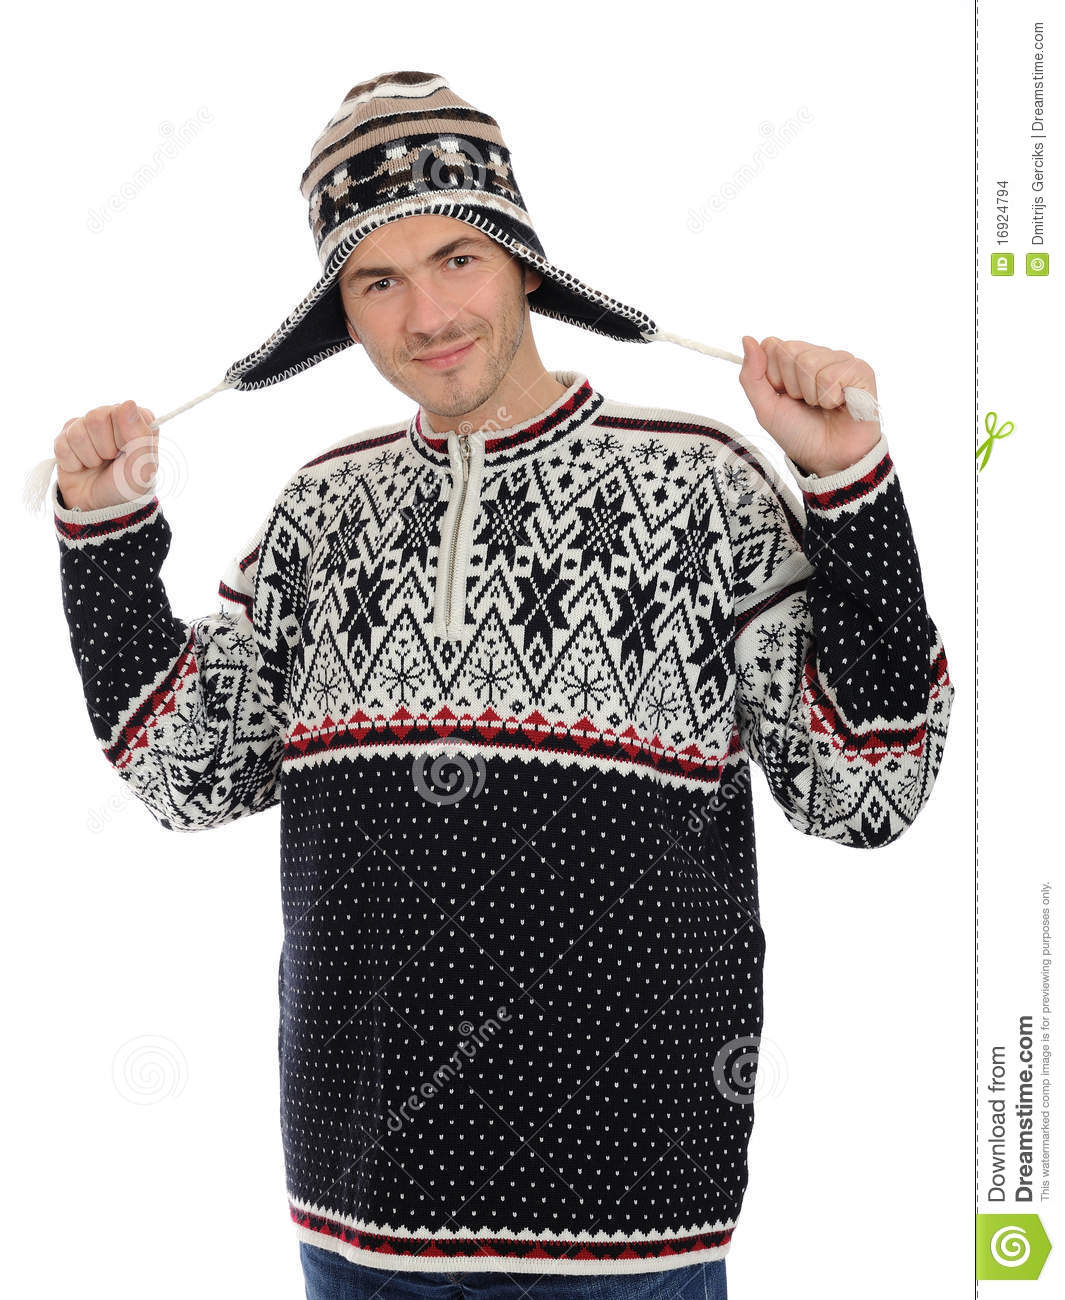 f73adb953 Funny Winter Men In Warm Hat And Clothes. Stock Photo - Image of ...